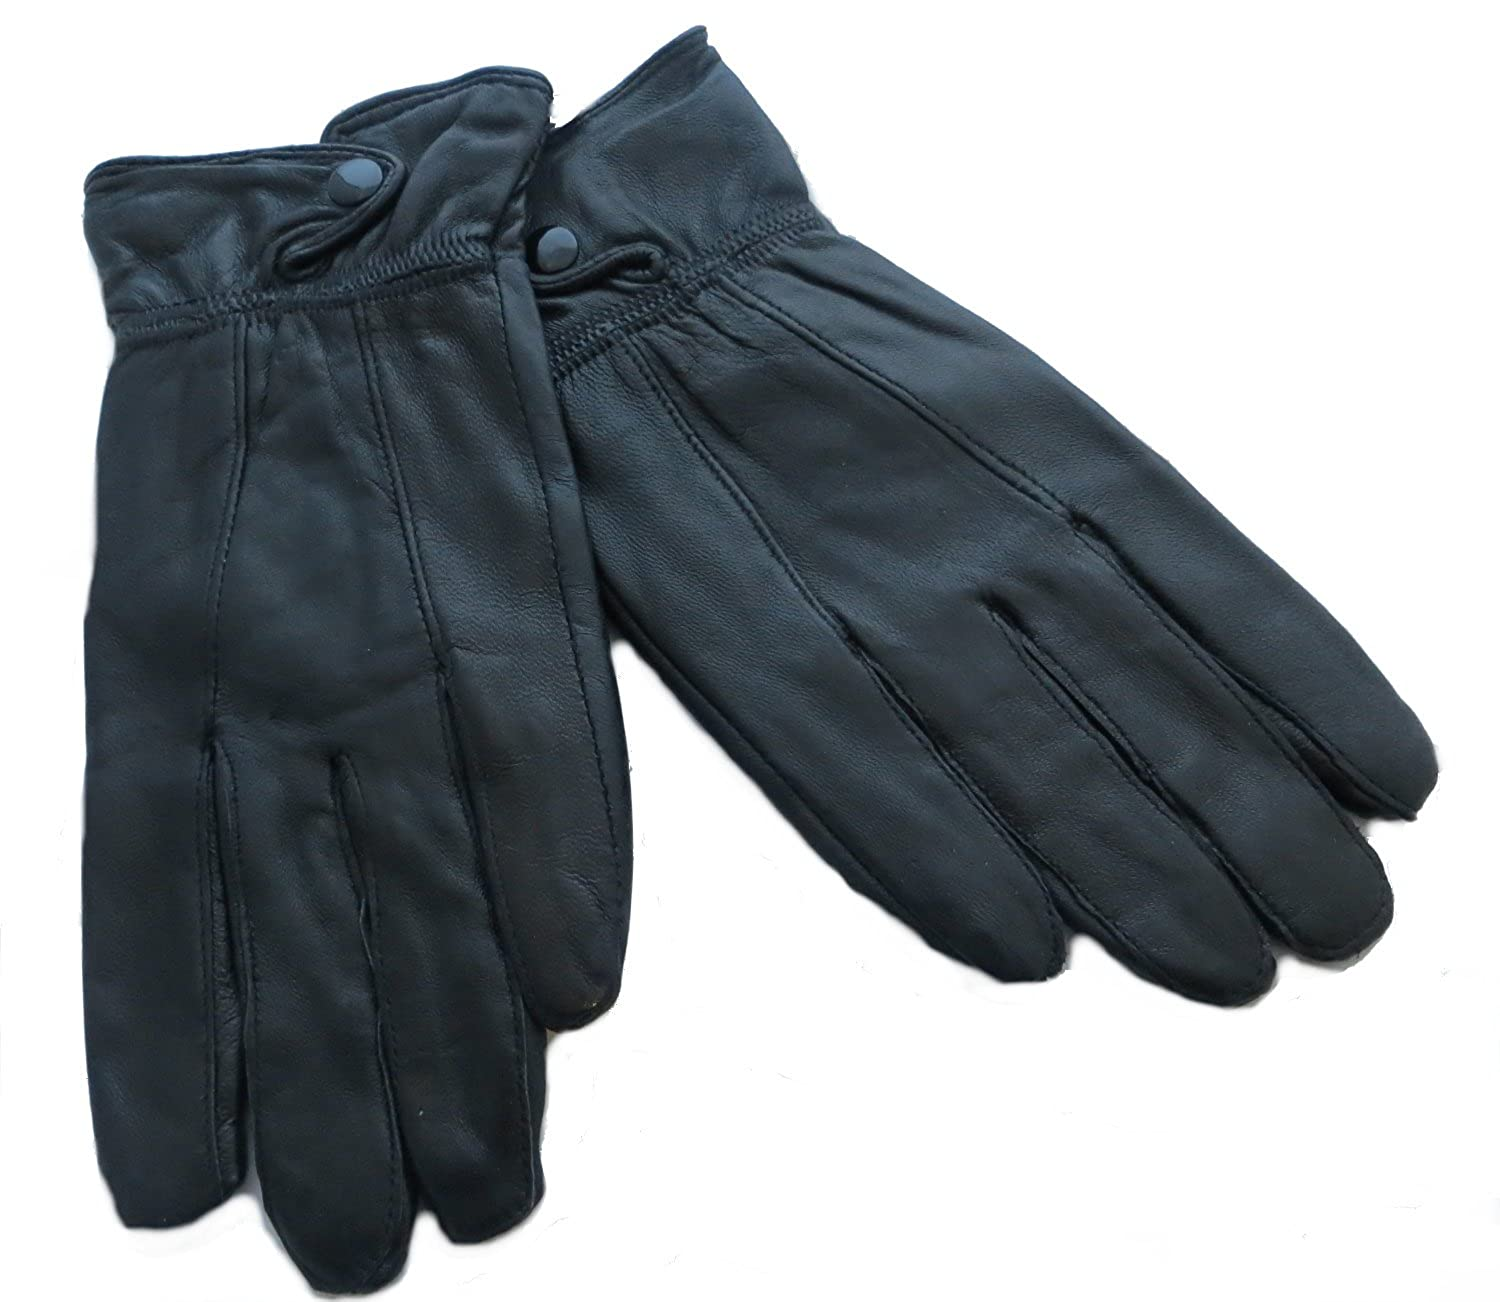 Black leather gloves with fur - Ladies Leather Gloves Black Or Brown Available Black S M